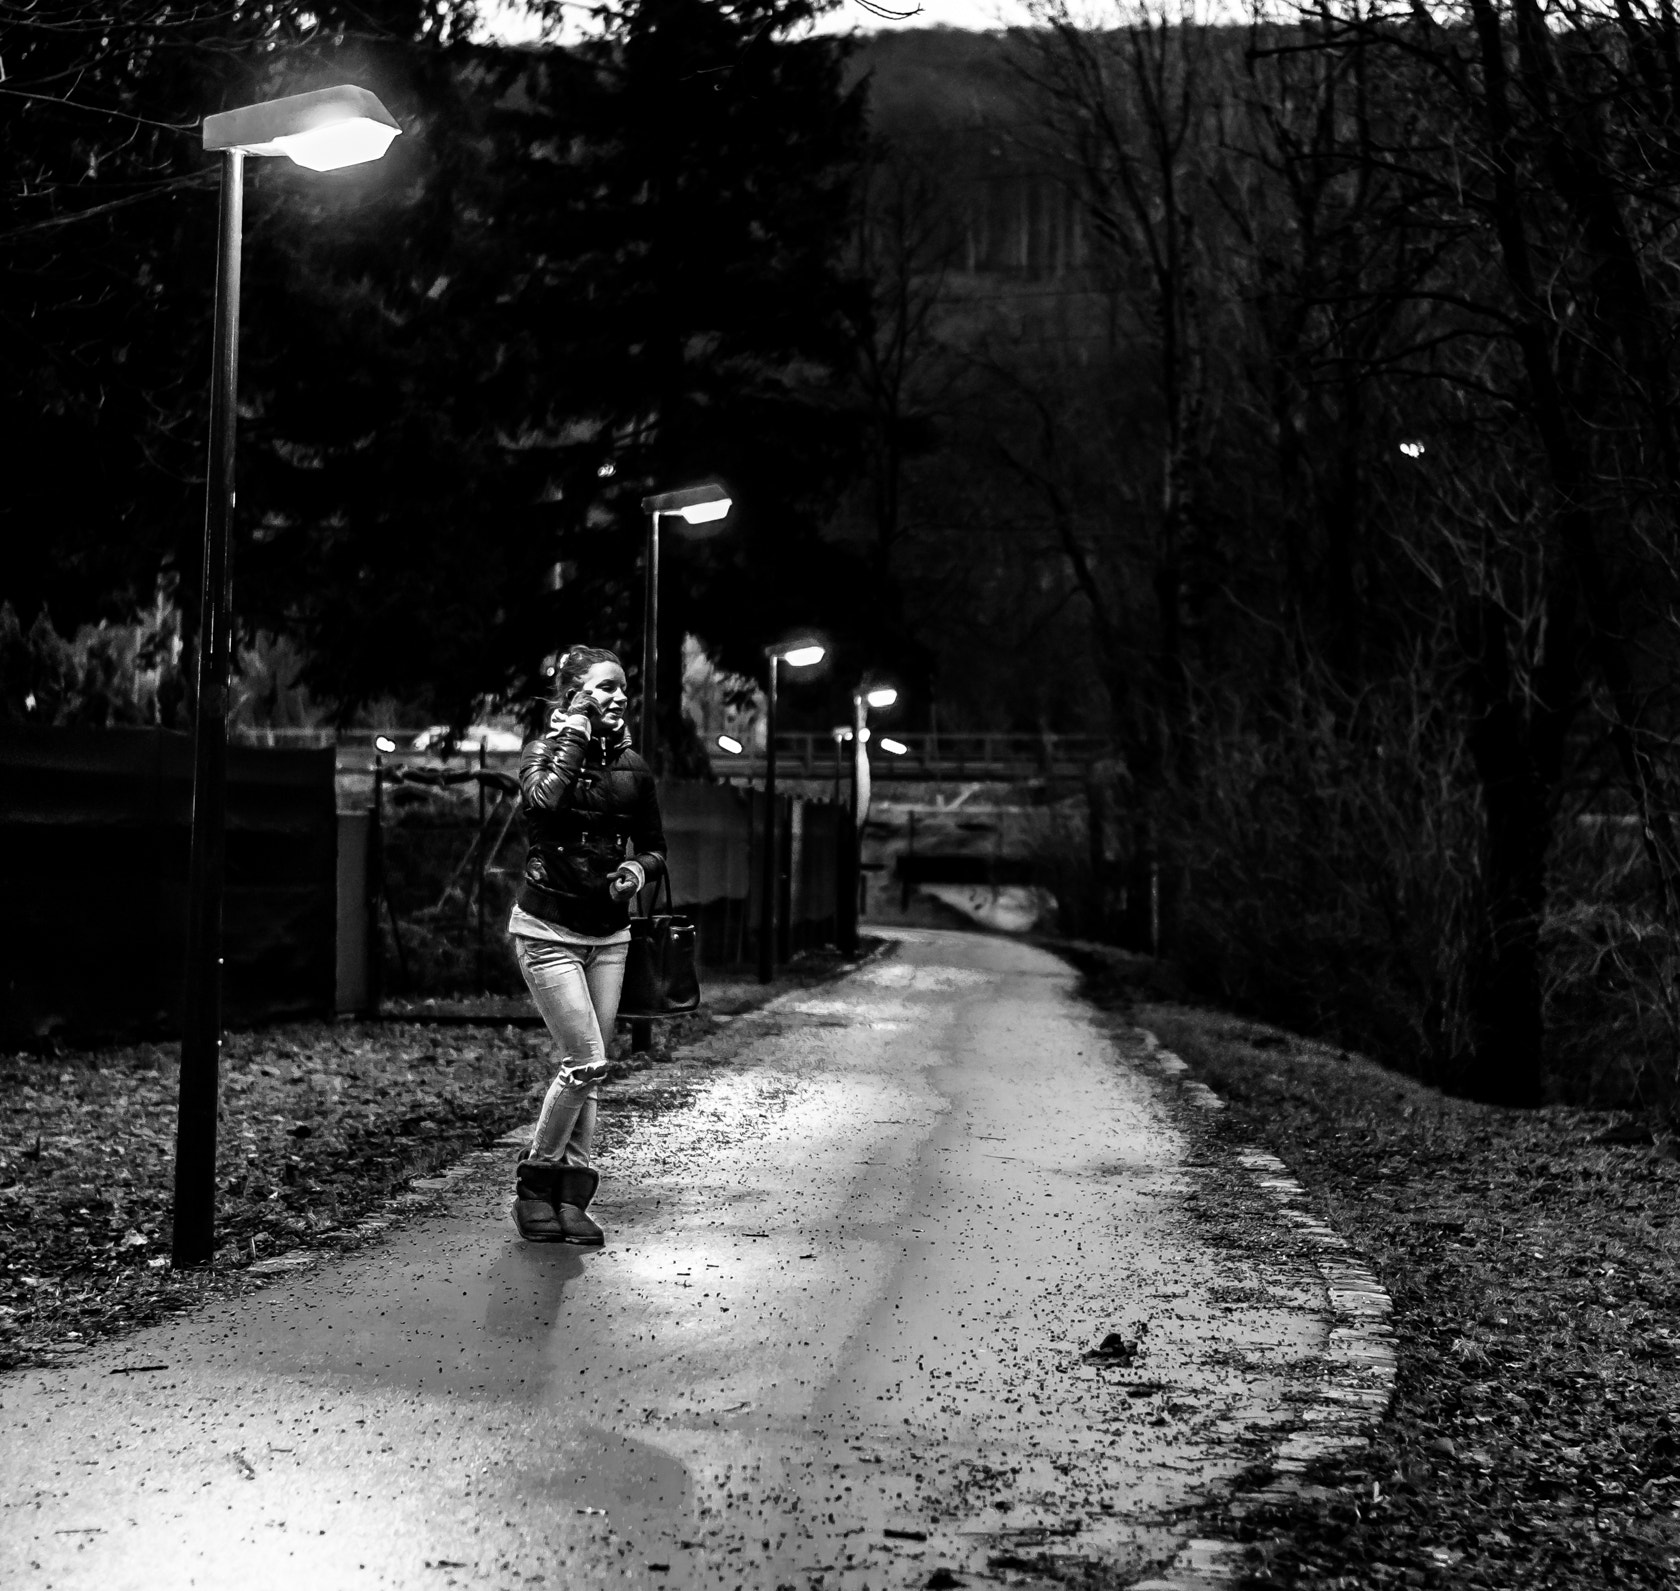 Photograph on the phone at night by Marcus T on 500px